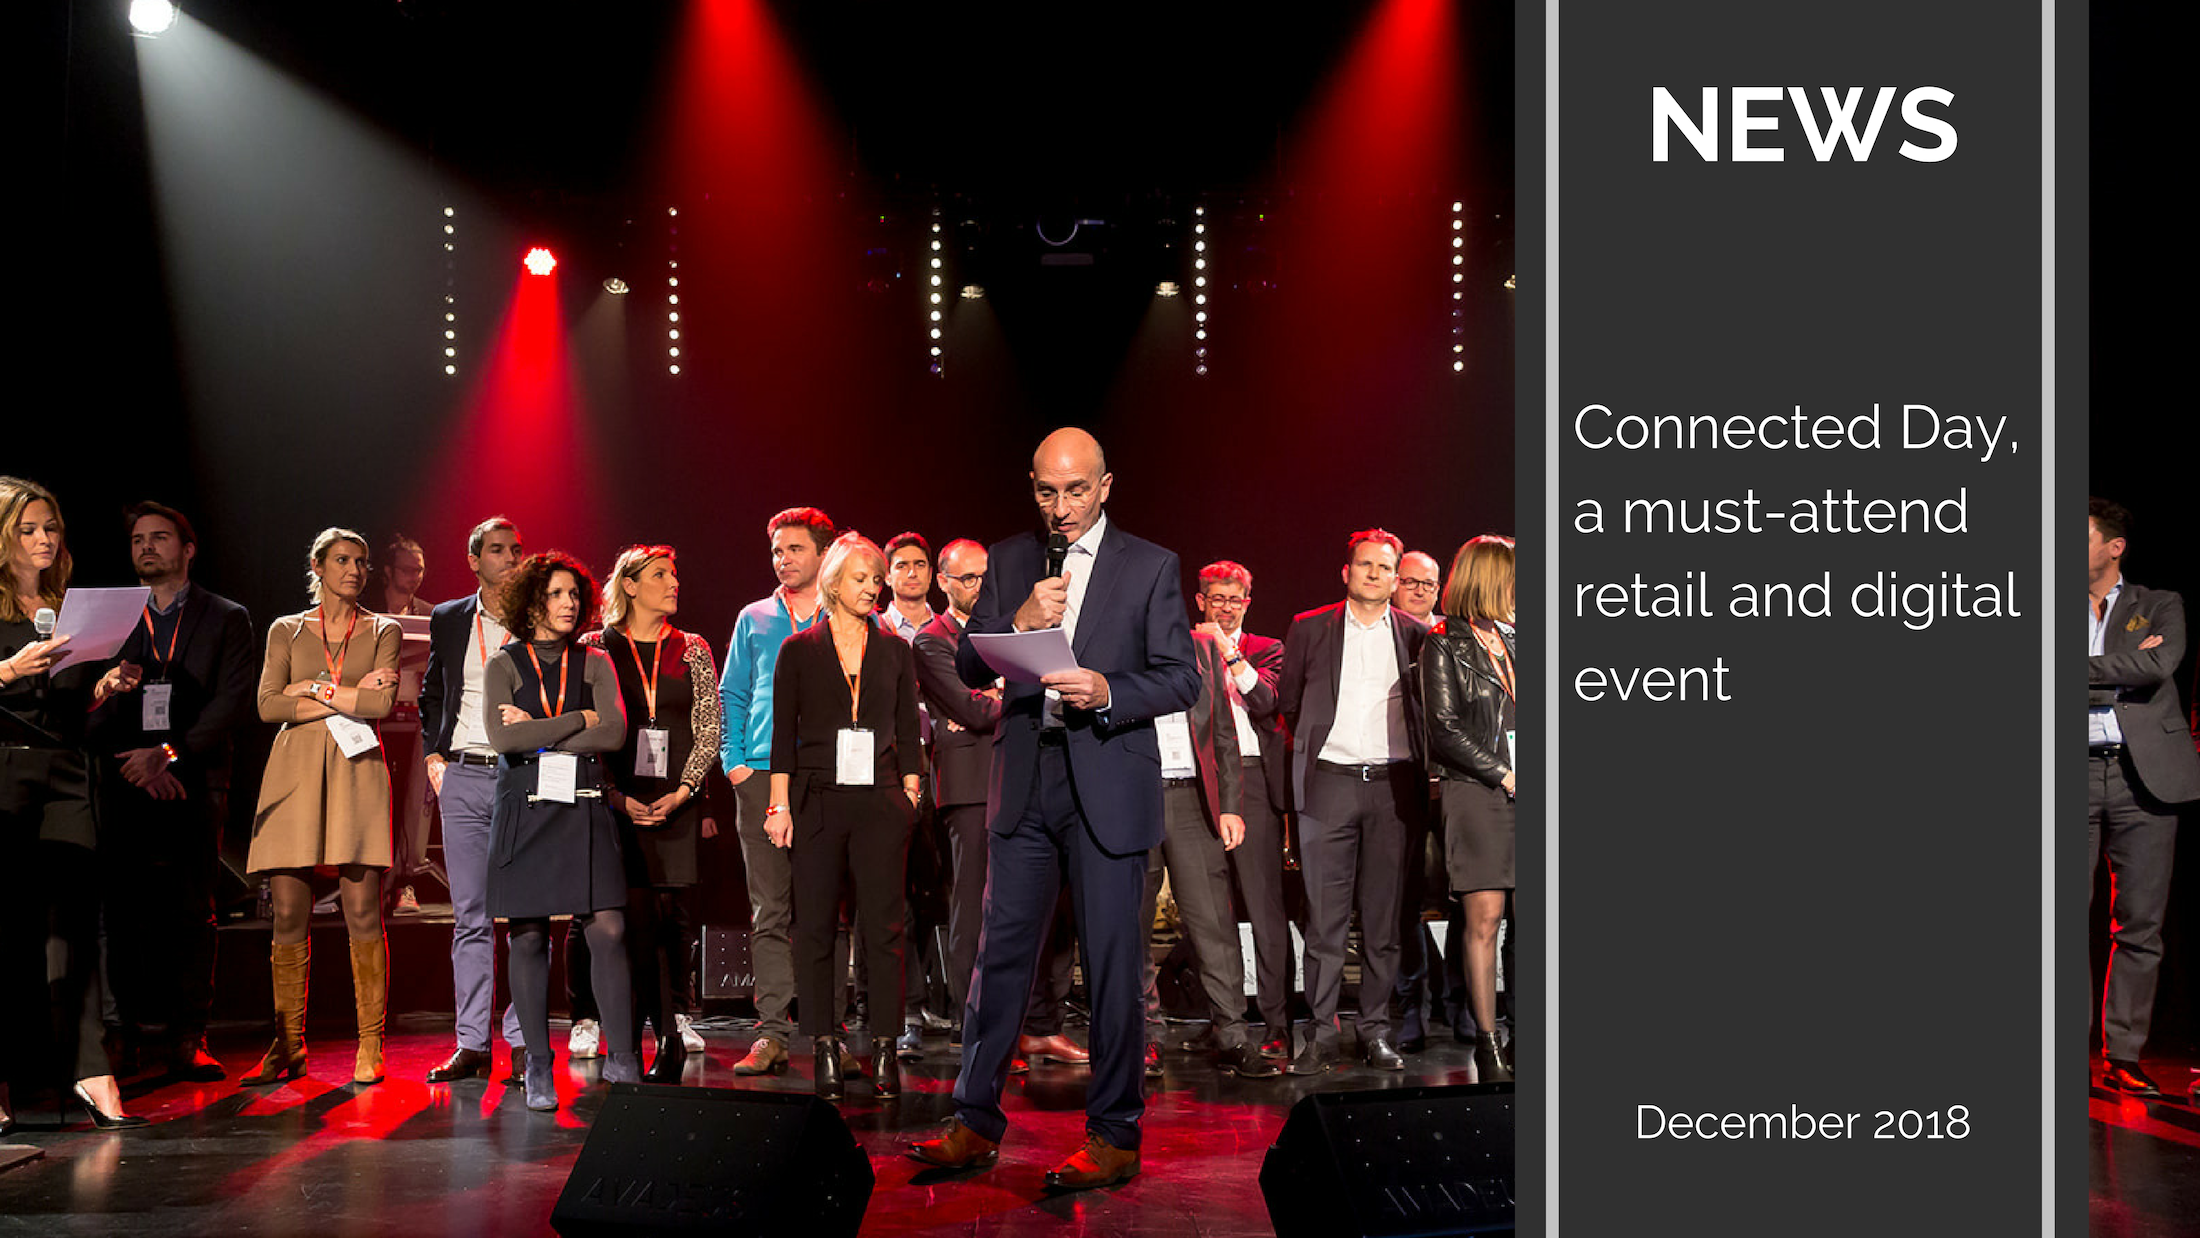 Trends News suite 2 - CONNECTED DAY, the new must-attend retail event in France